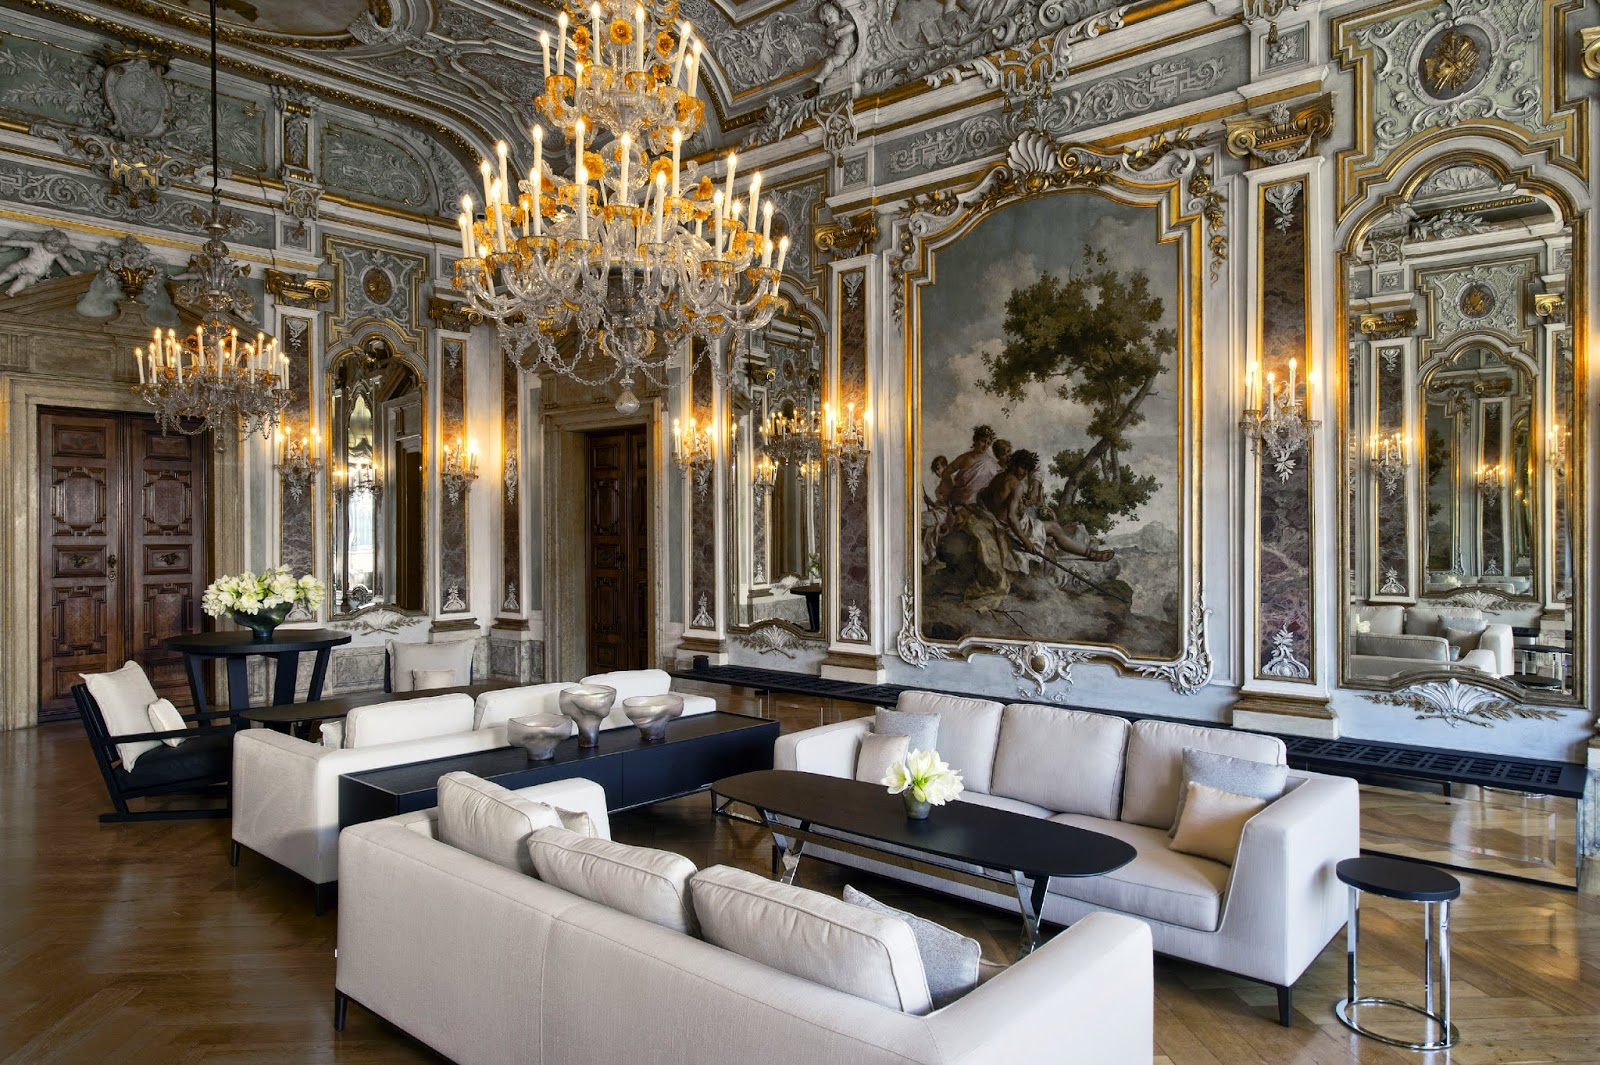 Luxury Hotels Heavenly And Historic Aman Canal Grande Venice